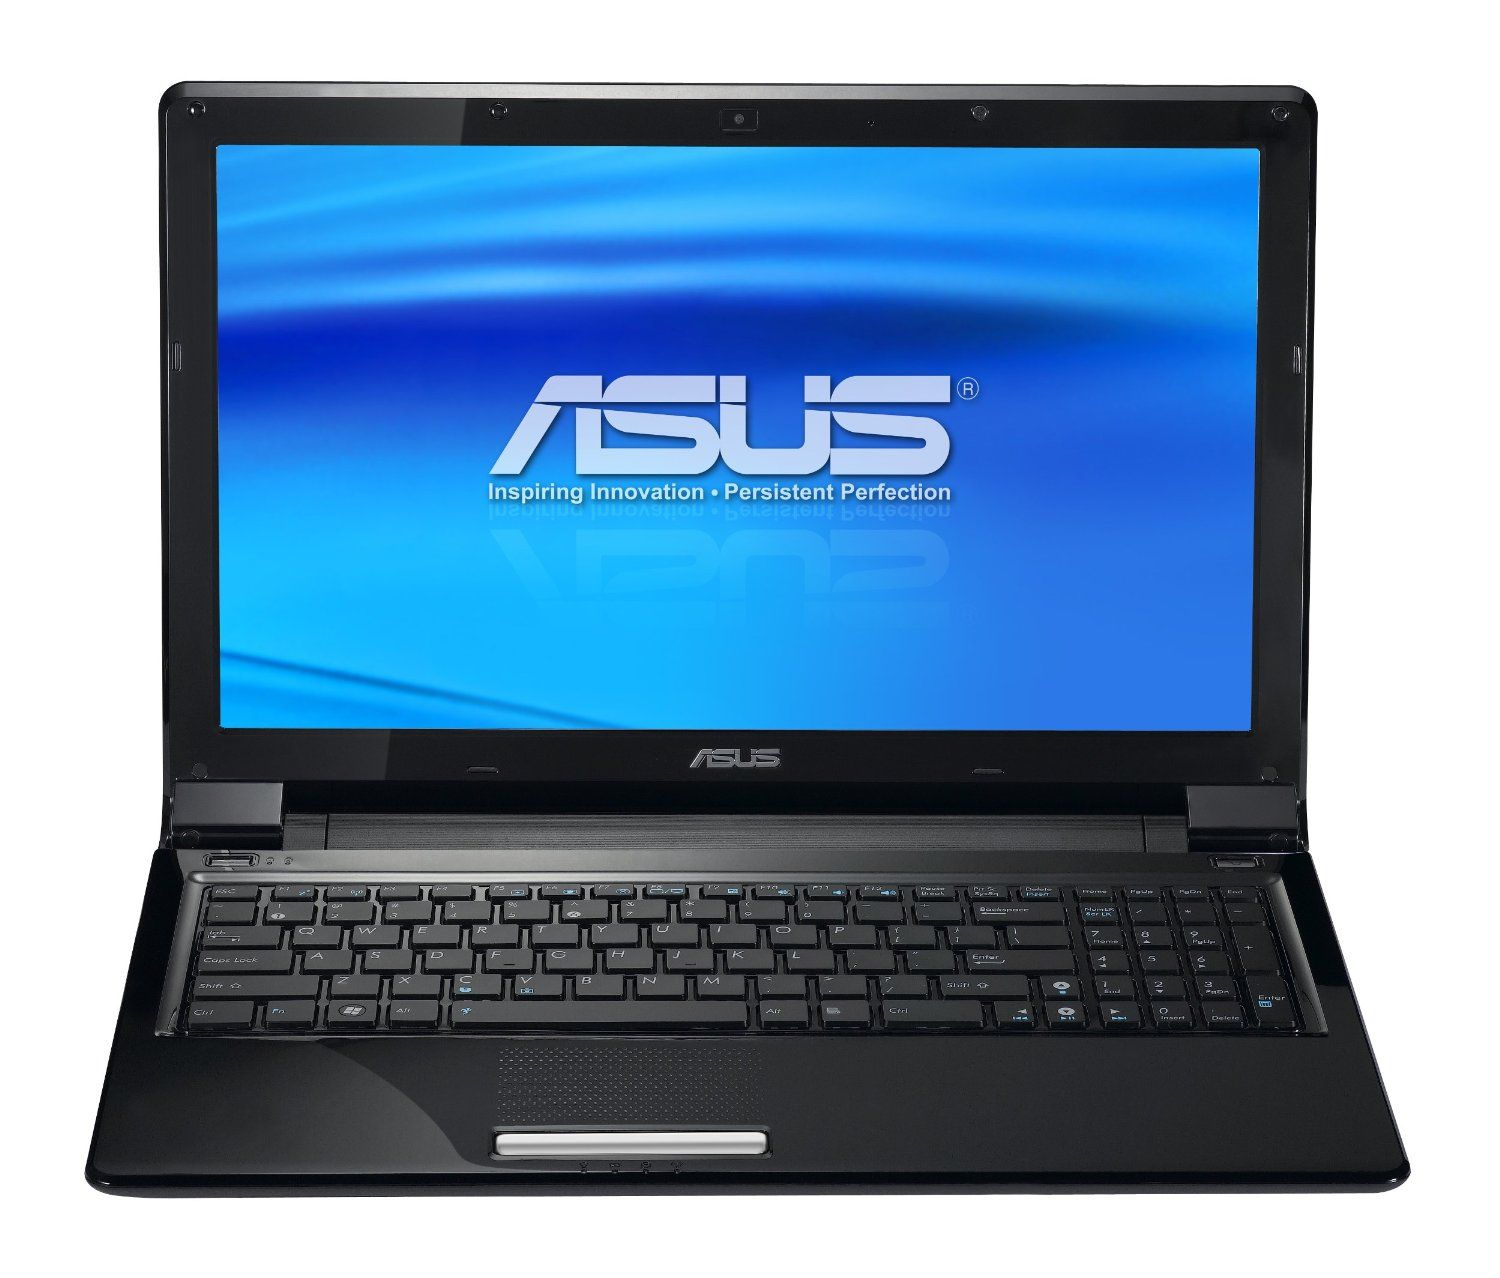 Asus ul50vta1 thin and light 156inch black laptop 11